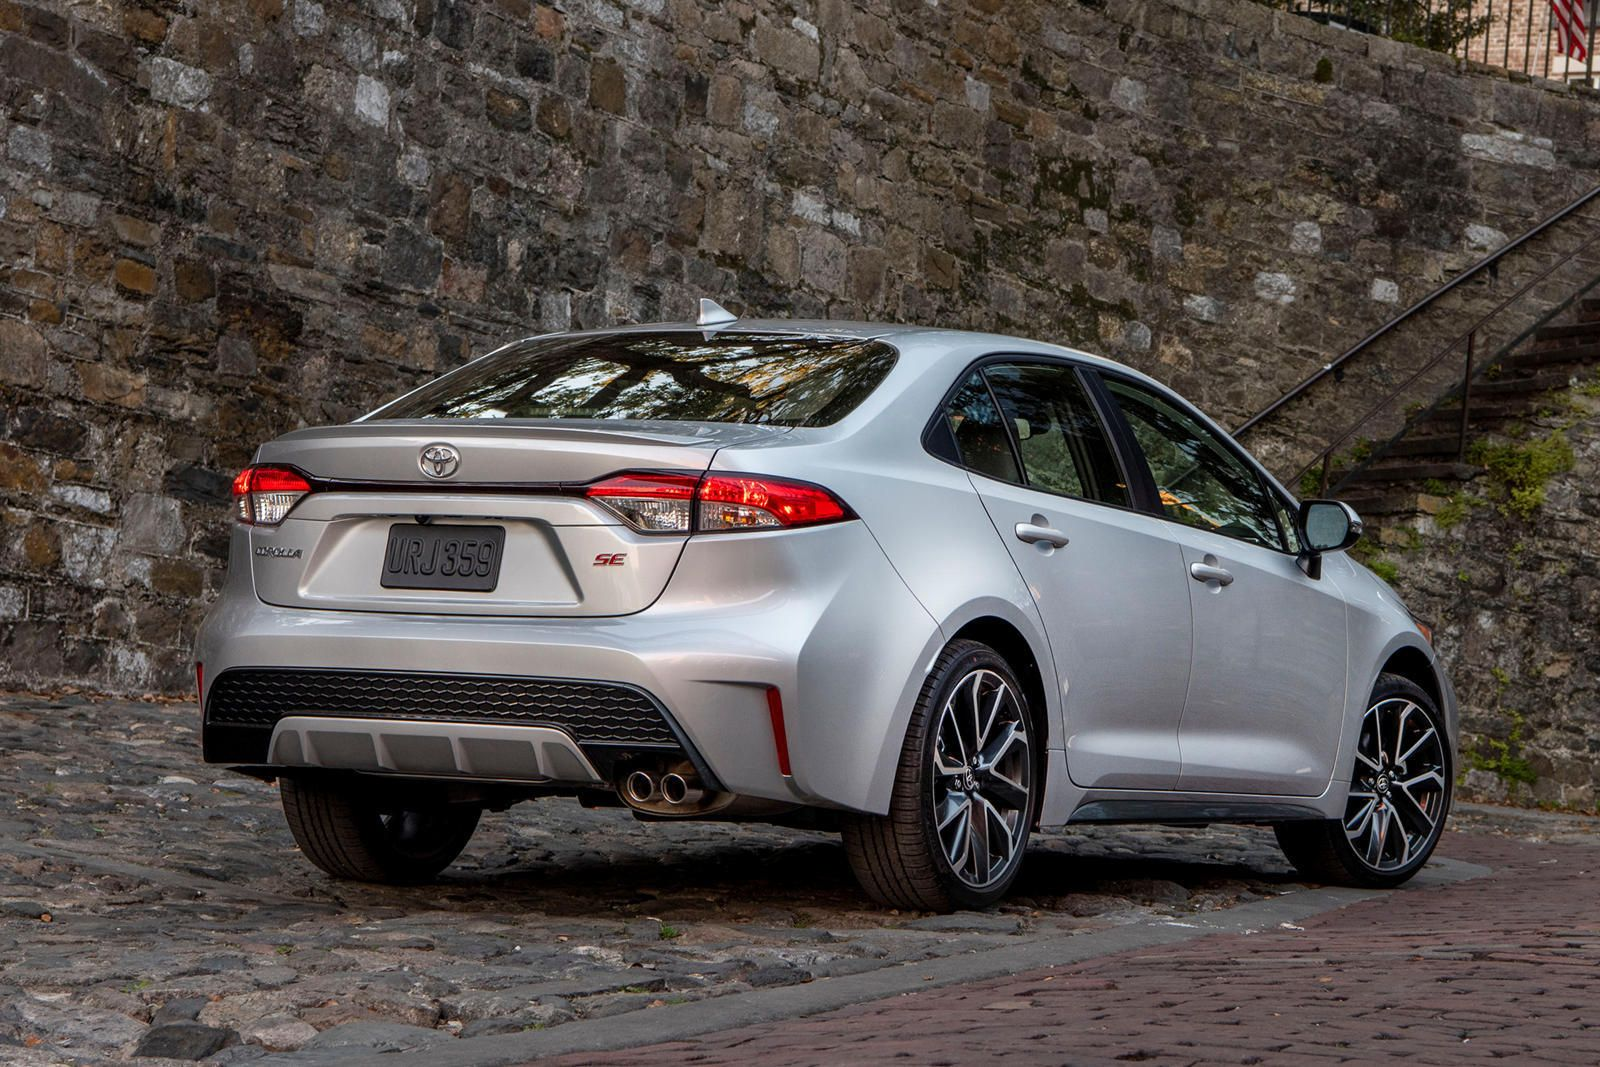 Best 2020 Cars For Under 30,000. It's a great time for